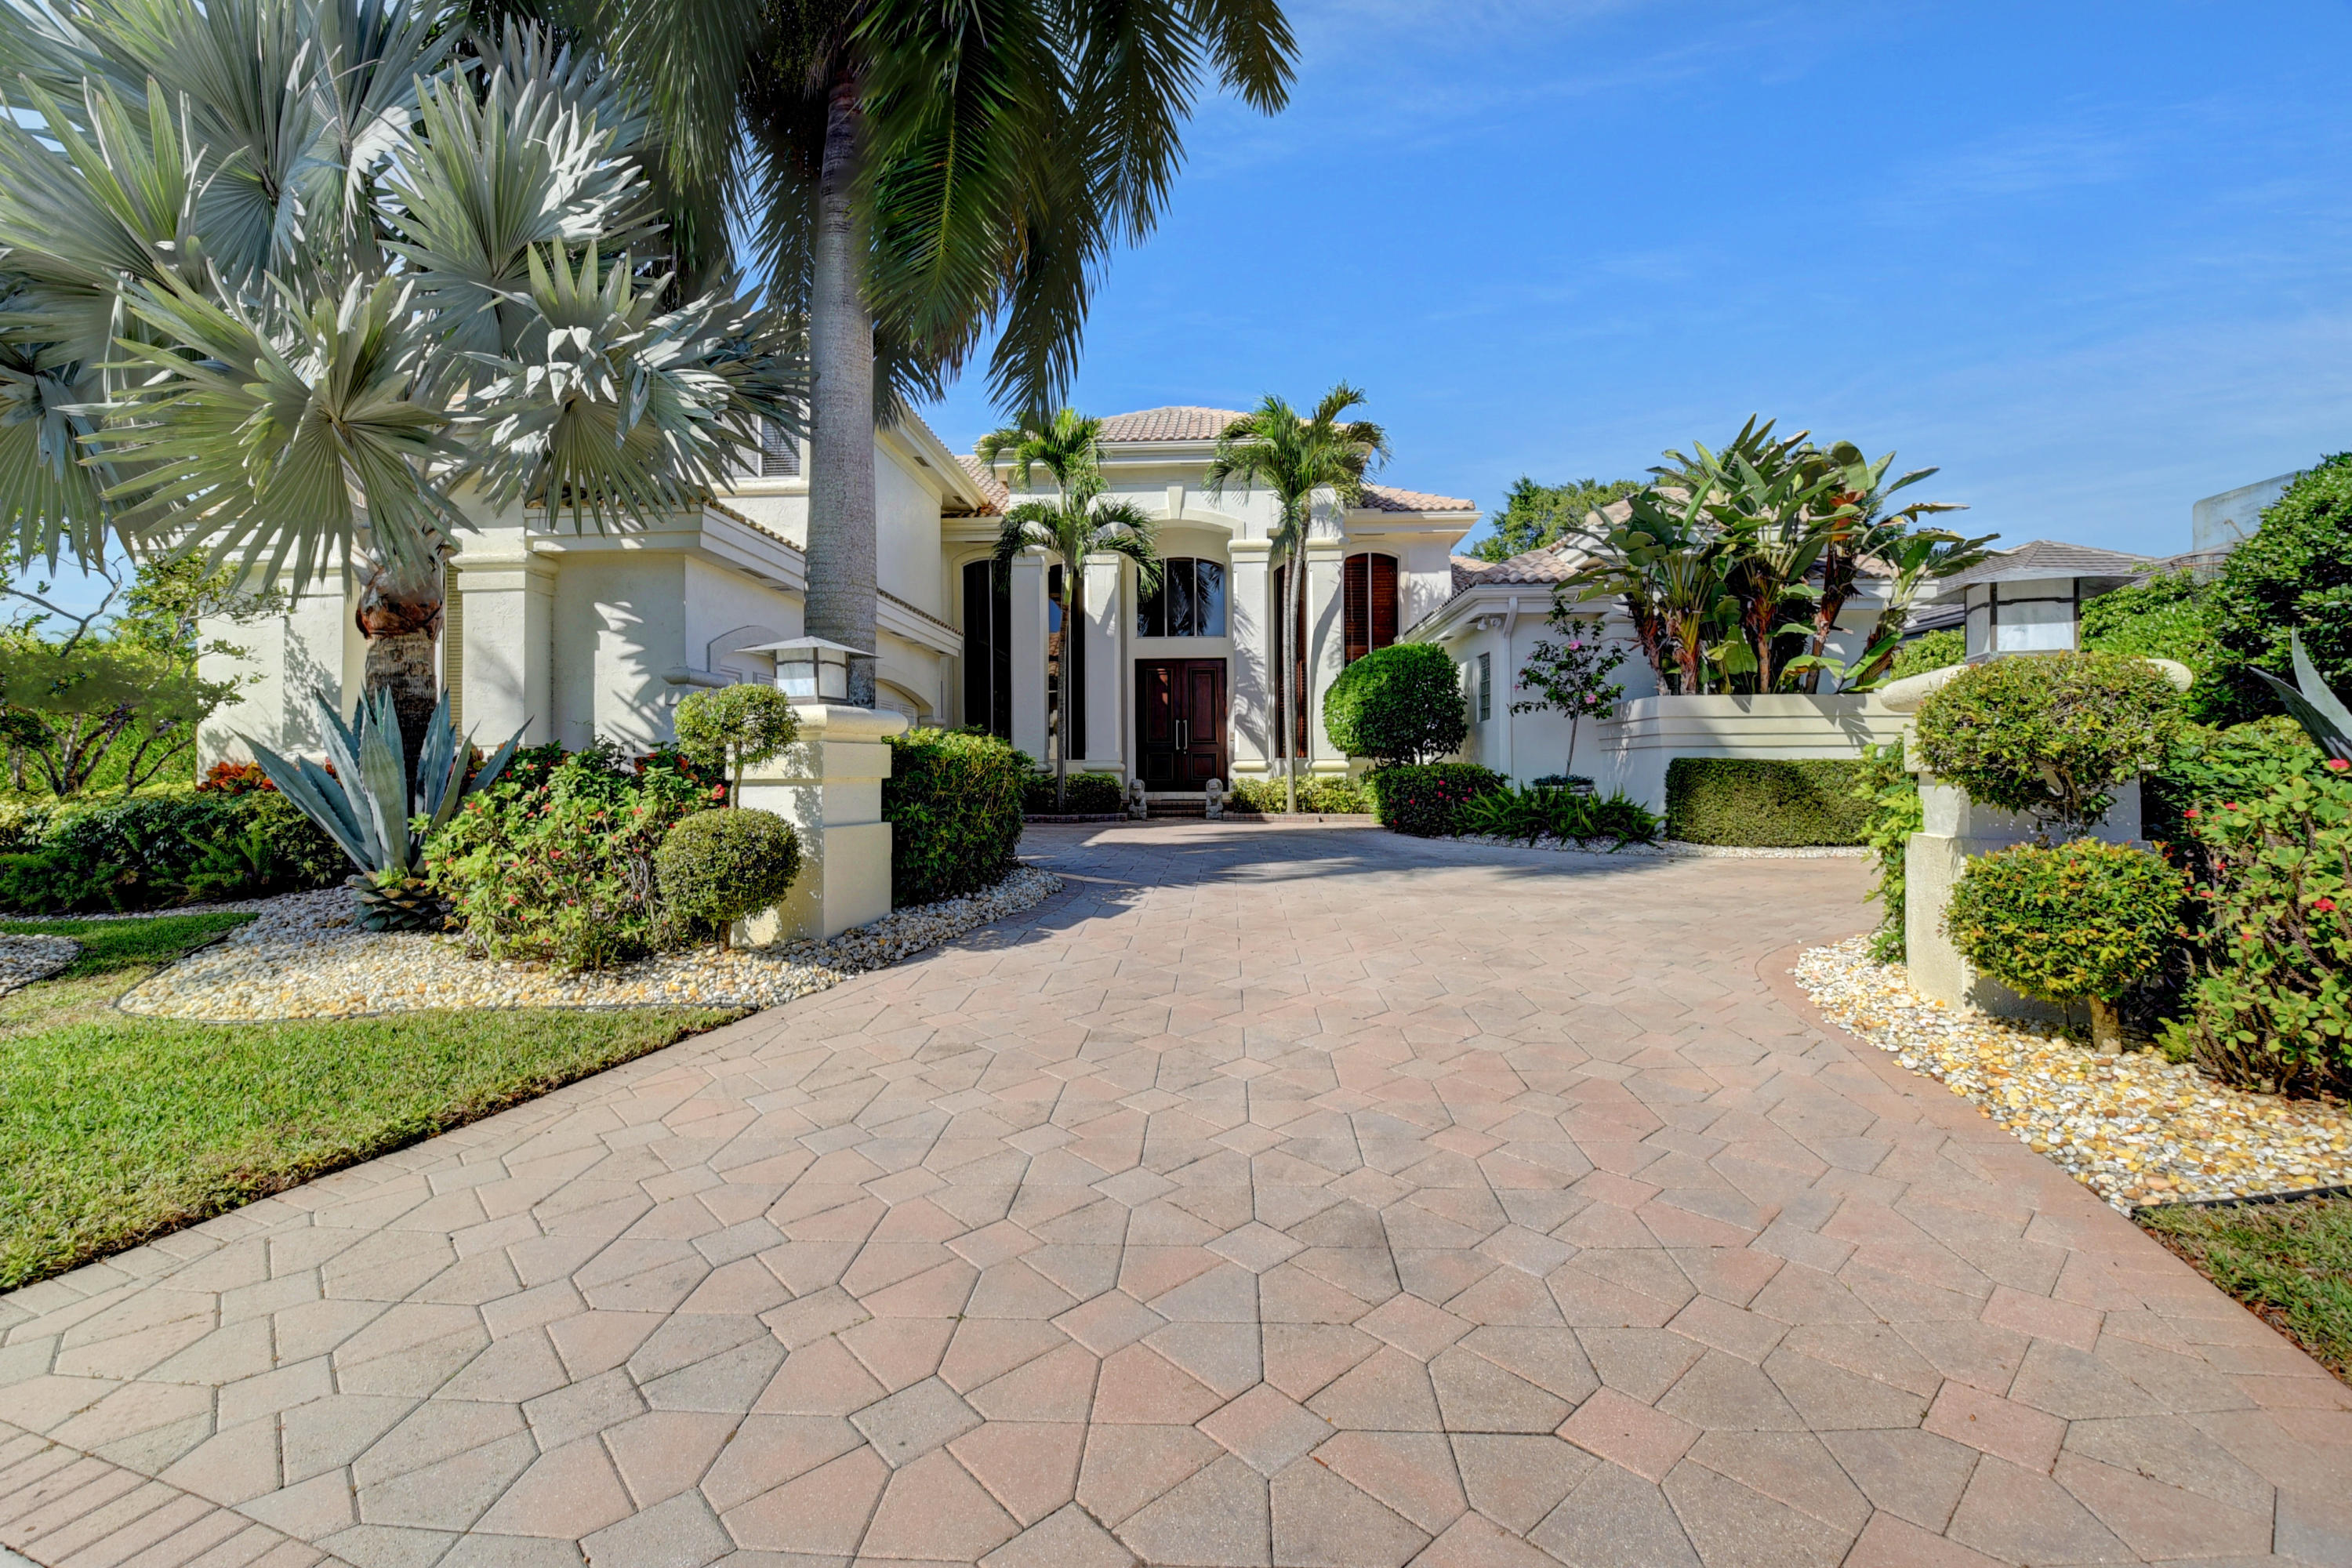 Home for sale in Woodfield Cc Boca Raton Florida